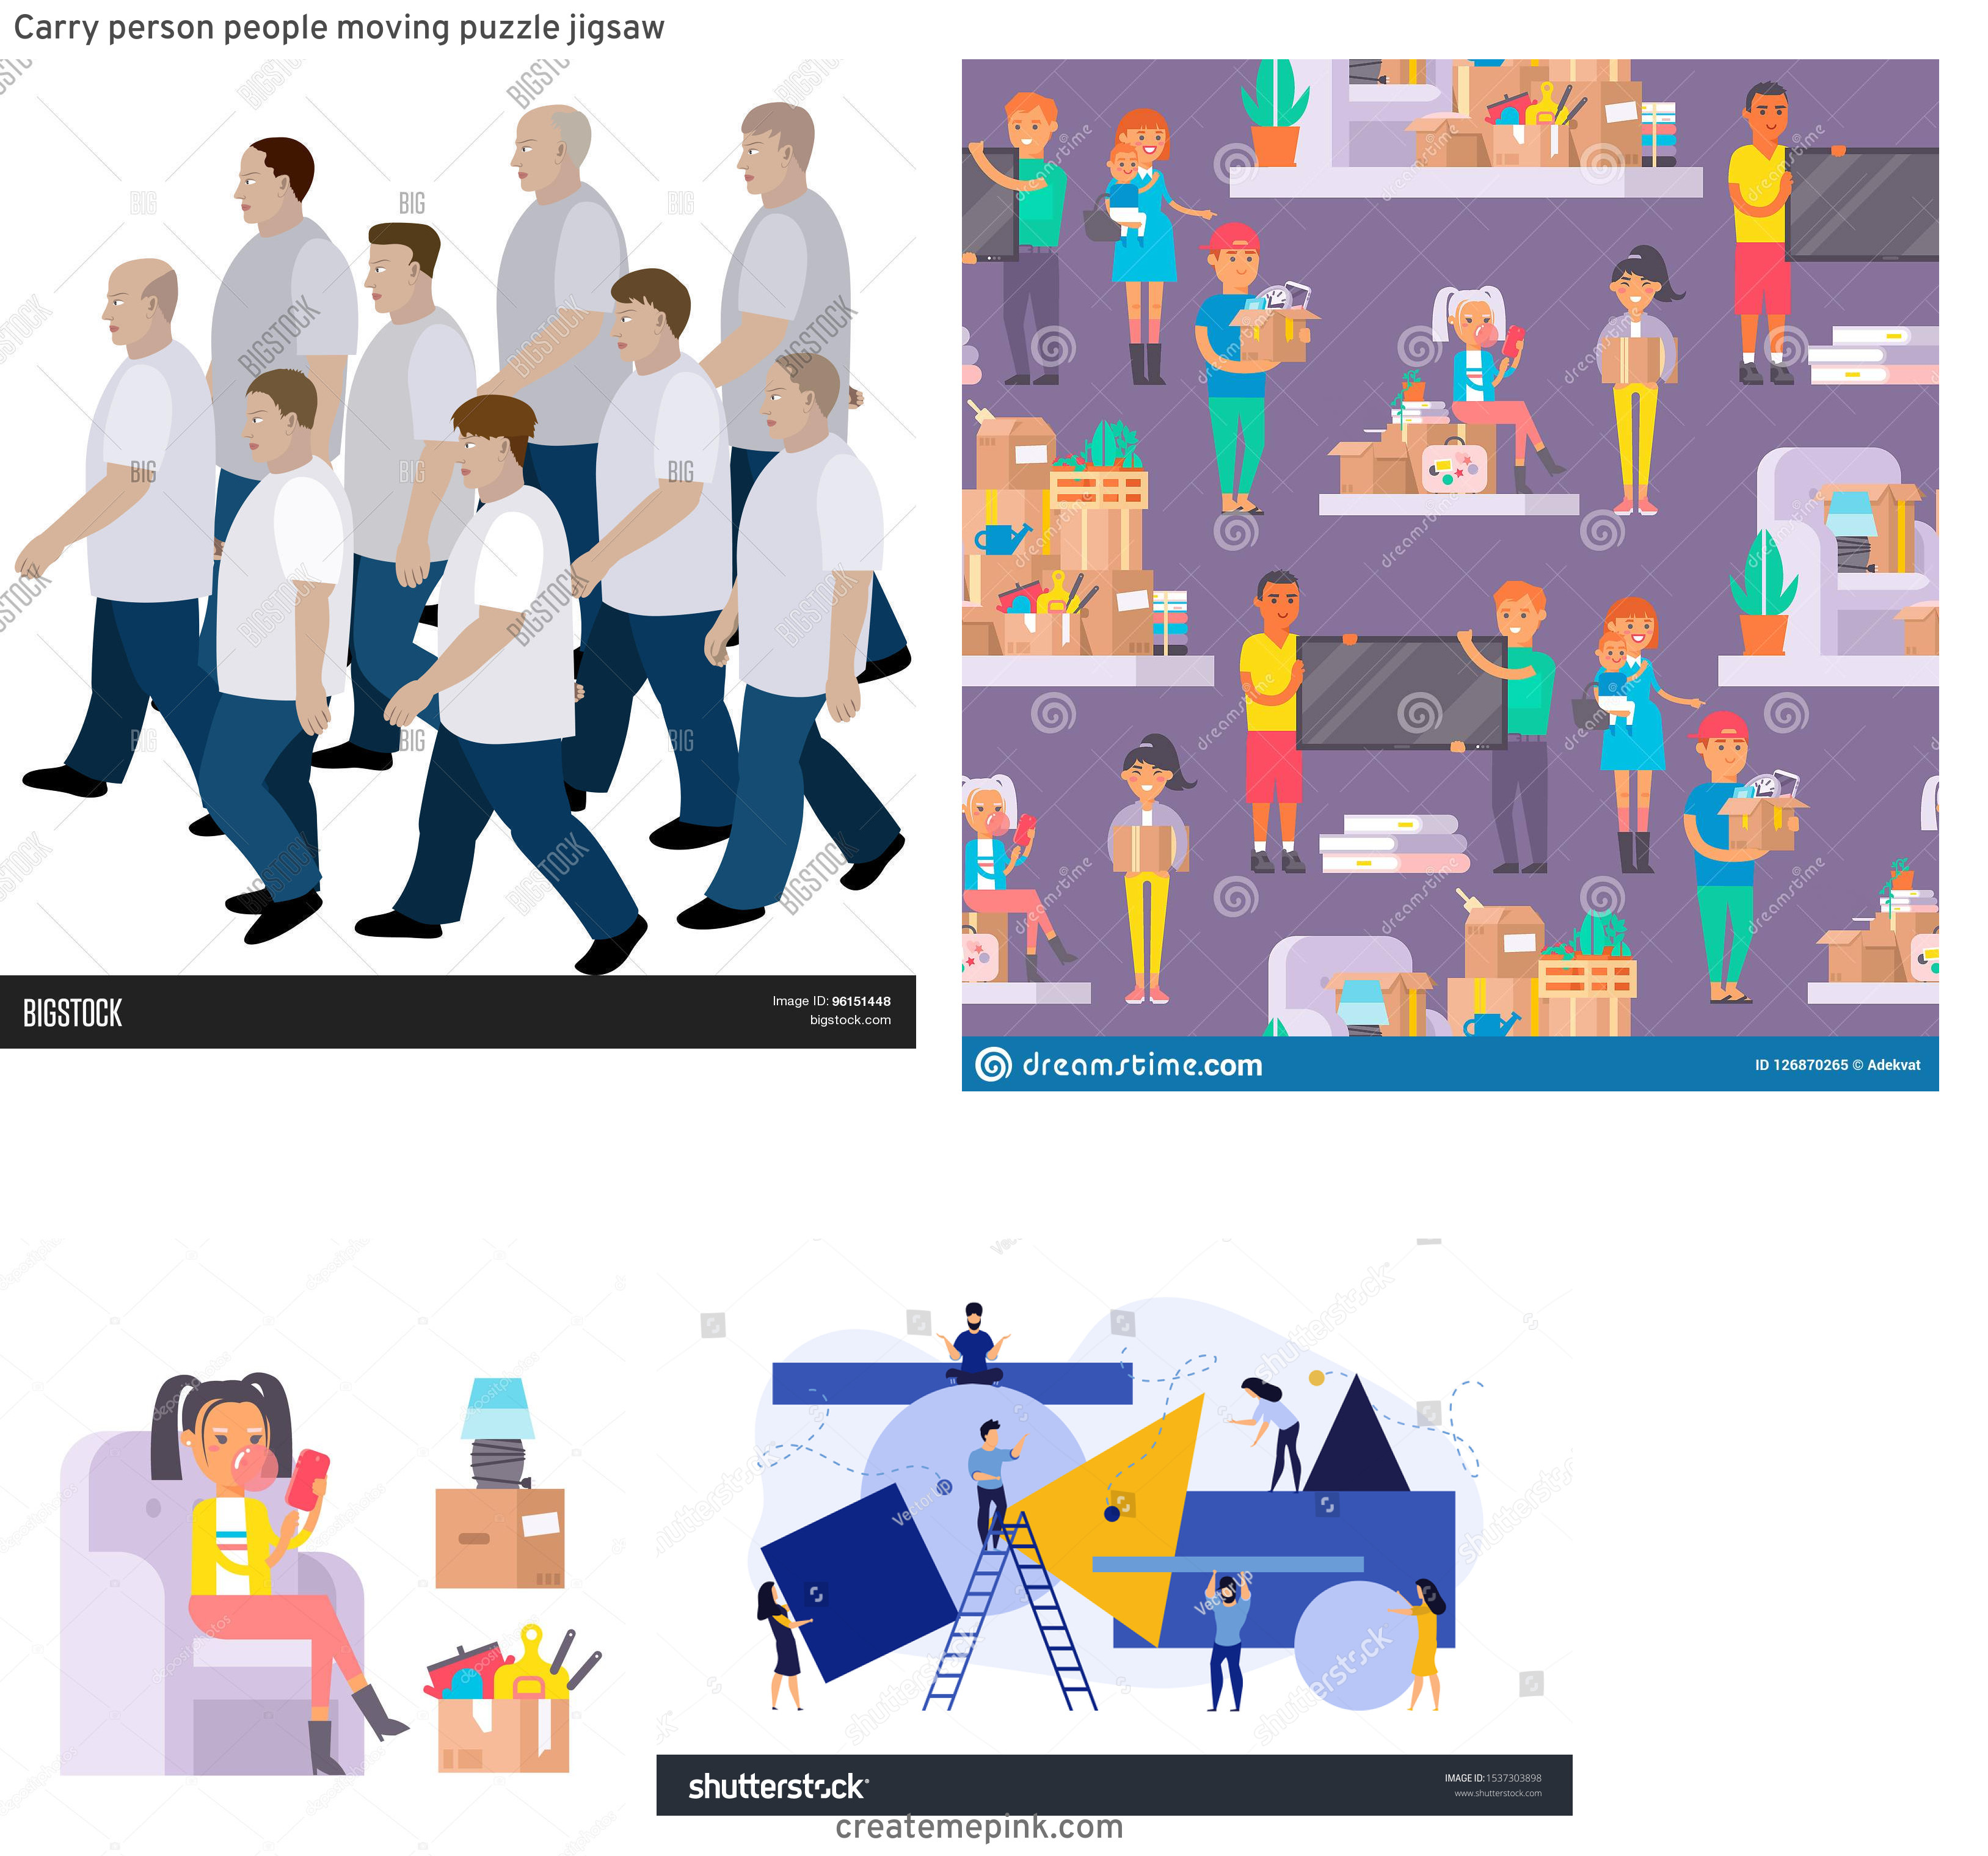 Vector Person Moving: Carry Person People Moving Puzzle Jigsaw